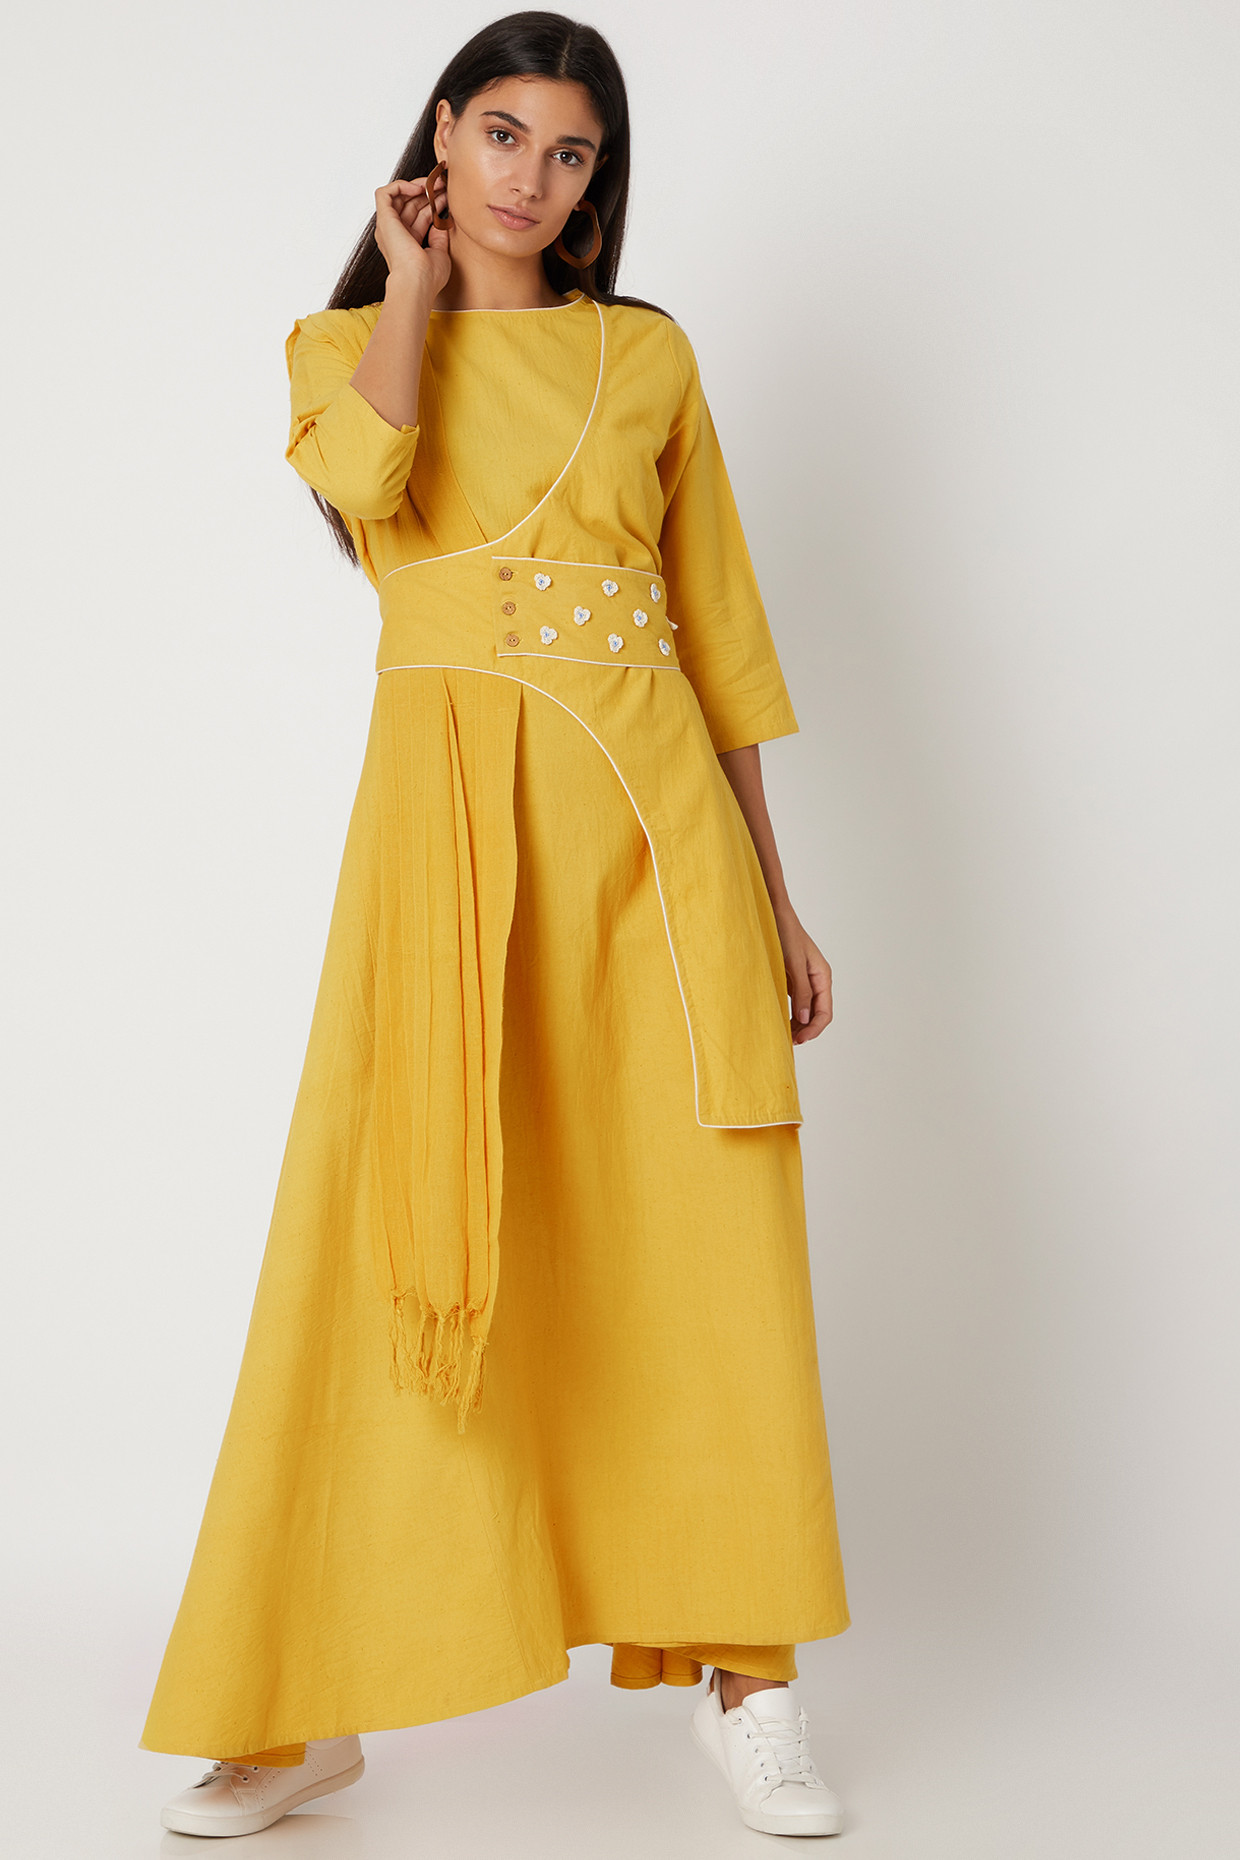 Yellow Draped Wrap Dress With Flowers by Avadh